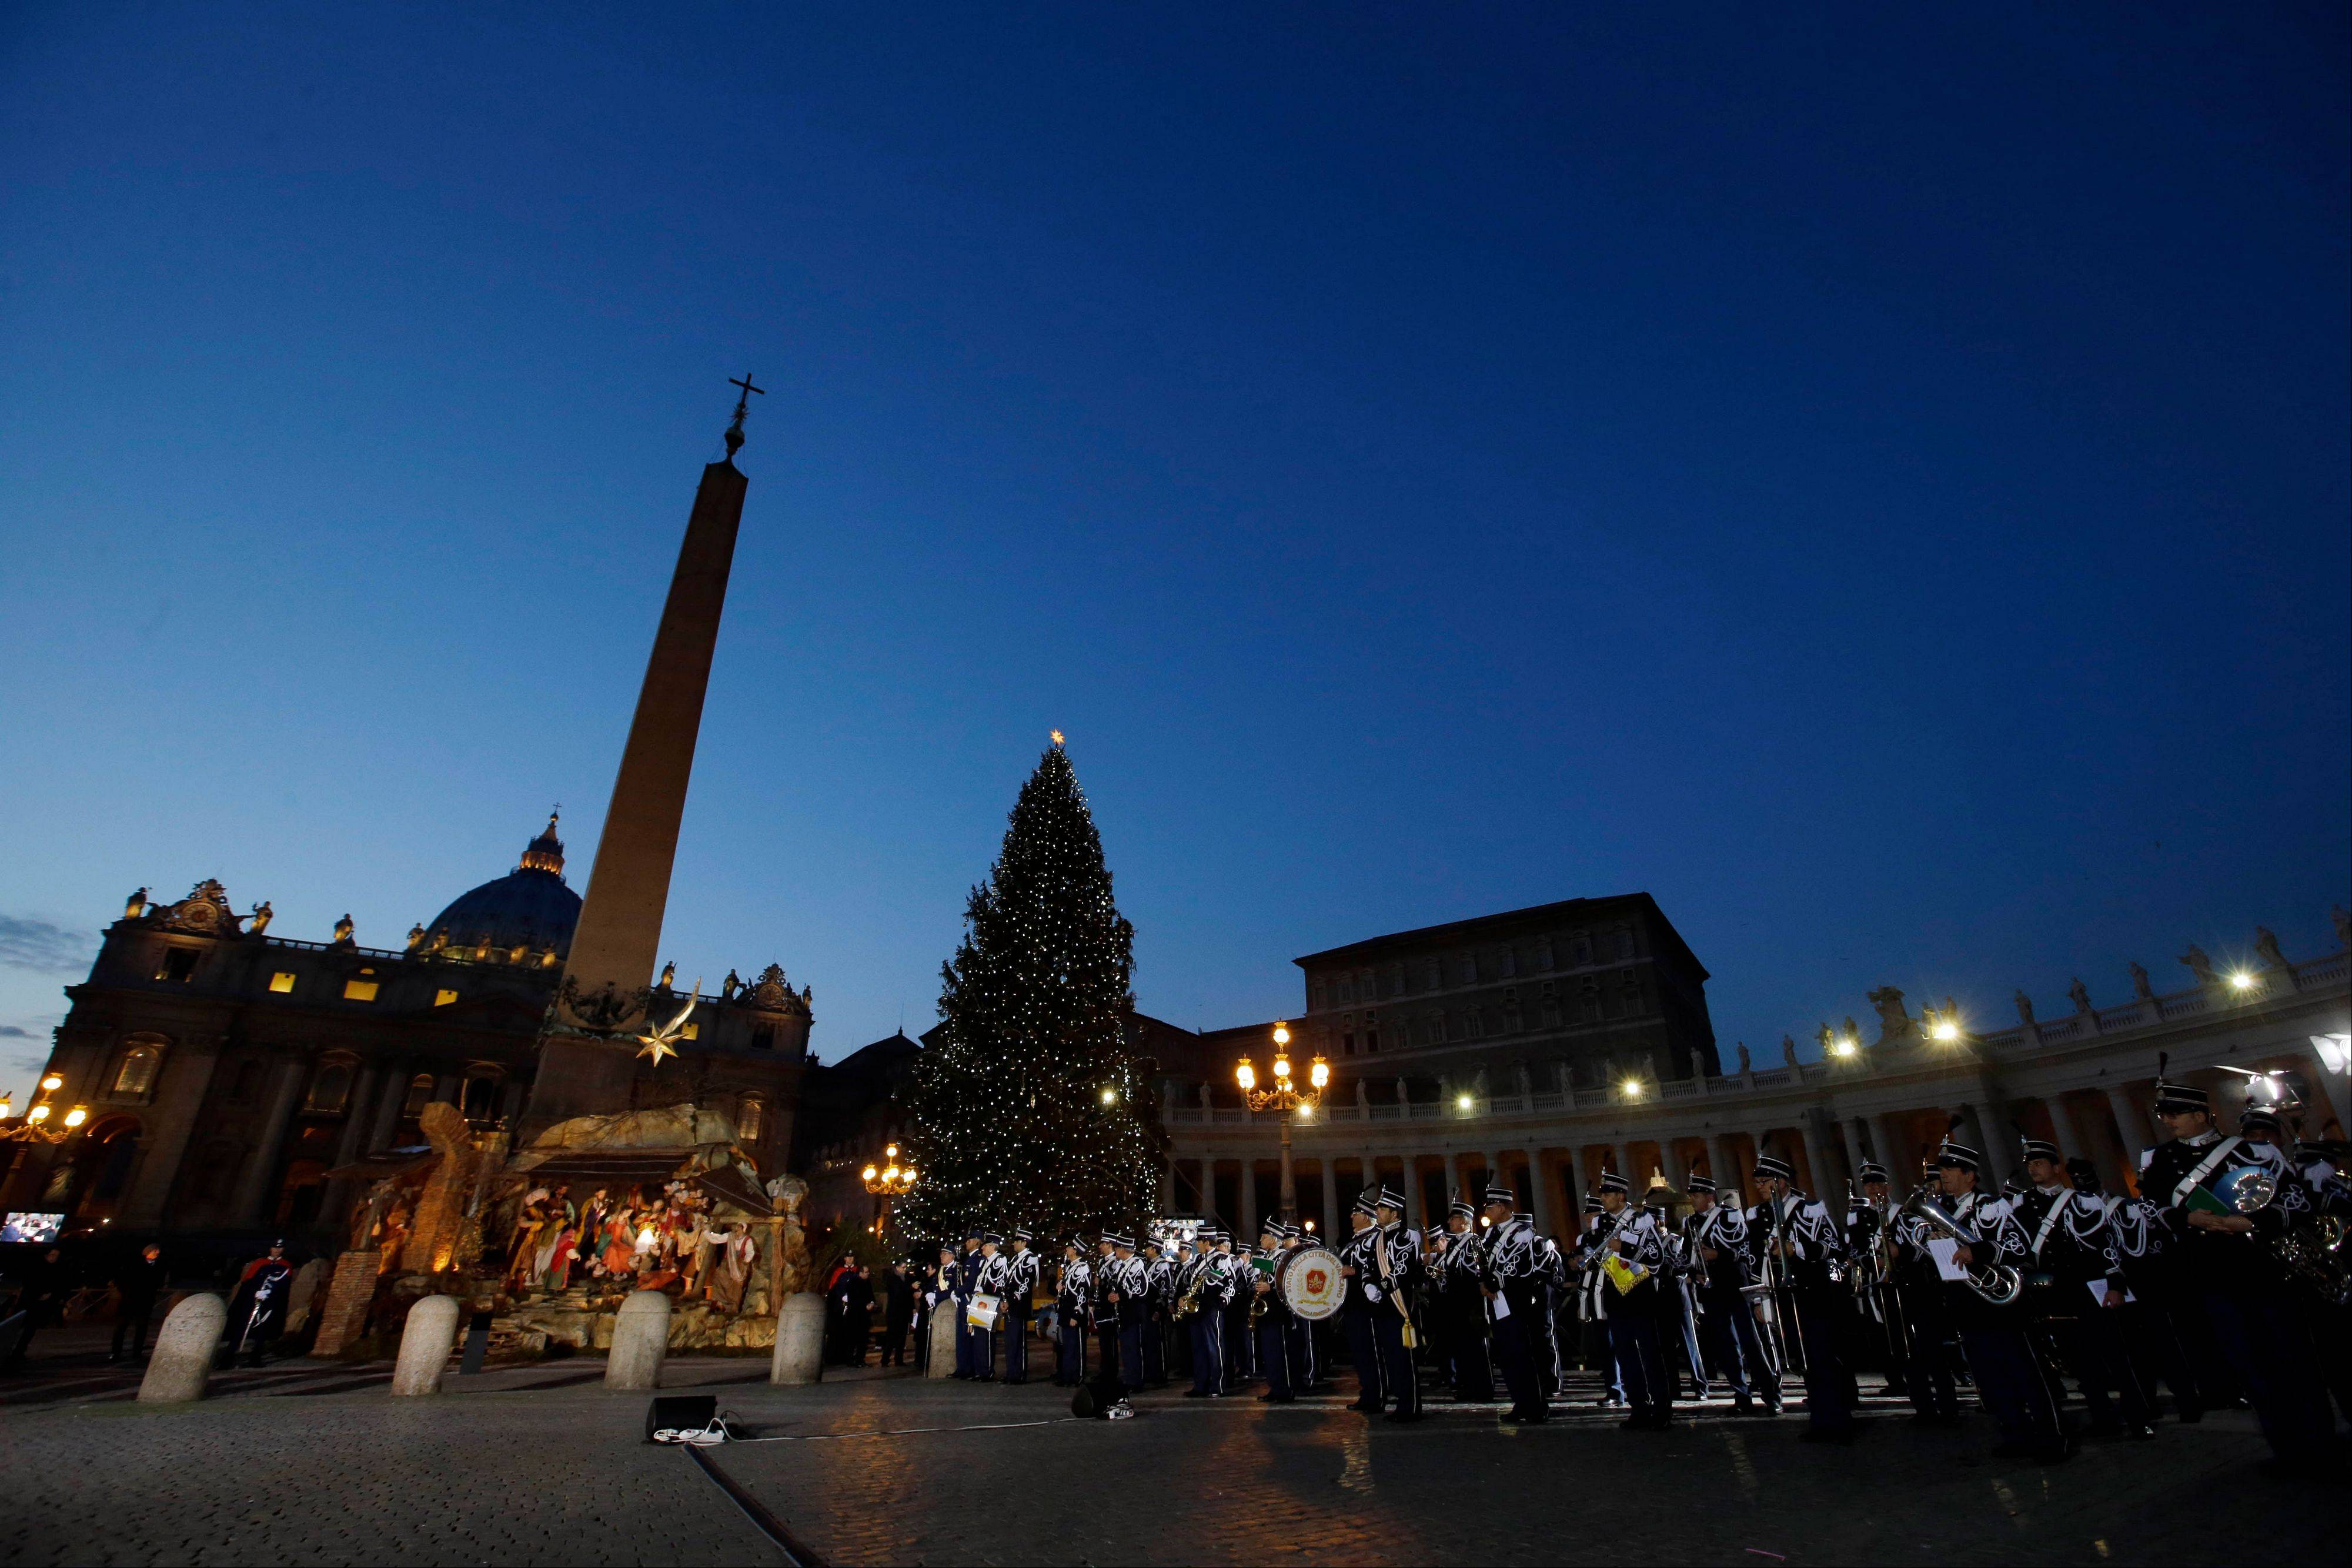 The Vatican gendarmerie (police and security force) band plays as the nativity scene is unveiled in St. Peter's Square at the Vatican, Tuesday, Dec. 24, 2013.